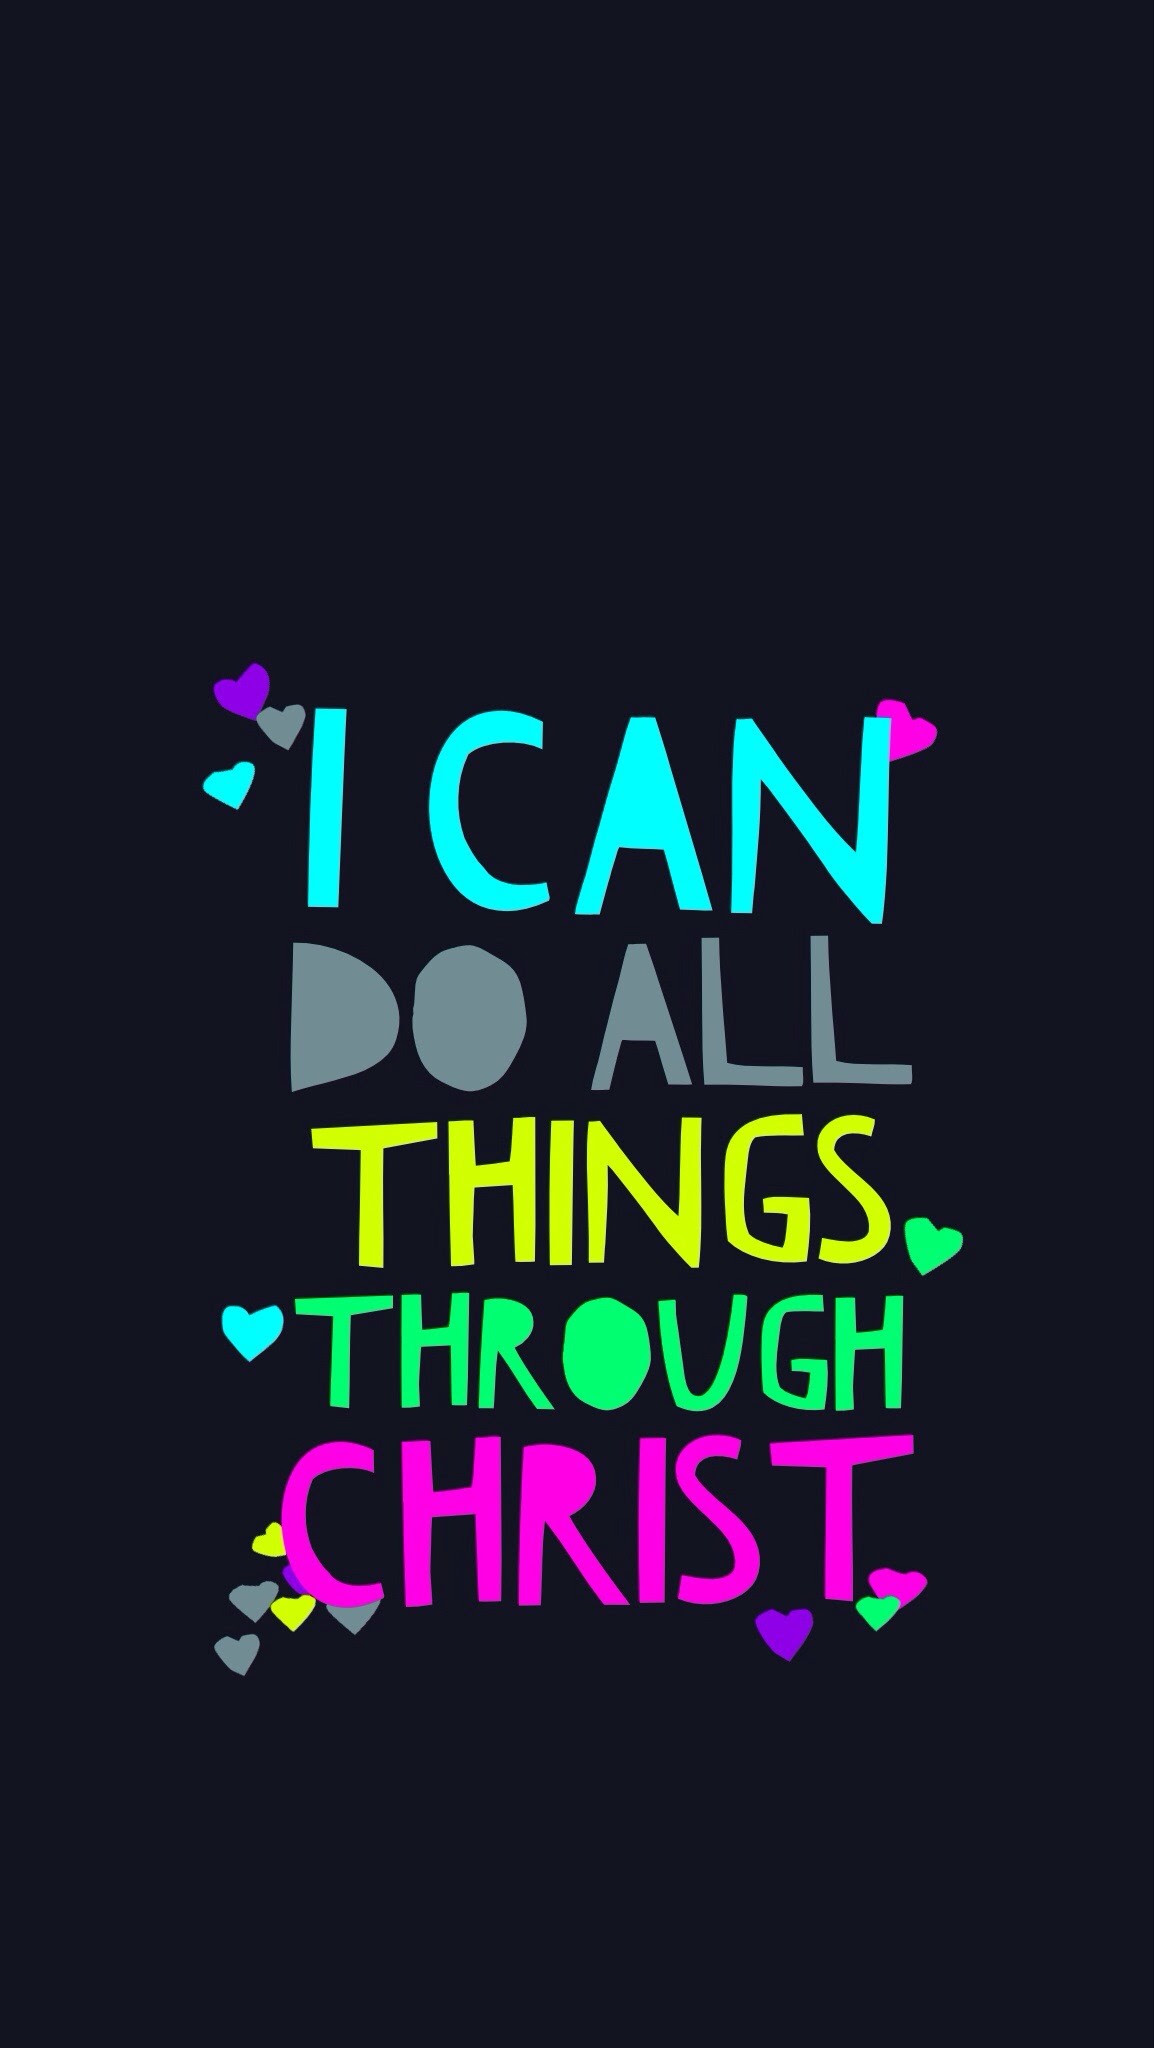 Christian Wallpaper For Android Phone 45 Images